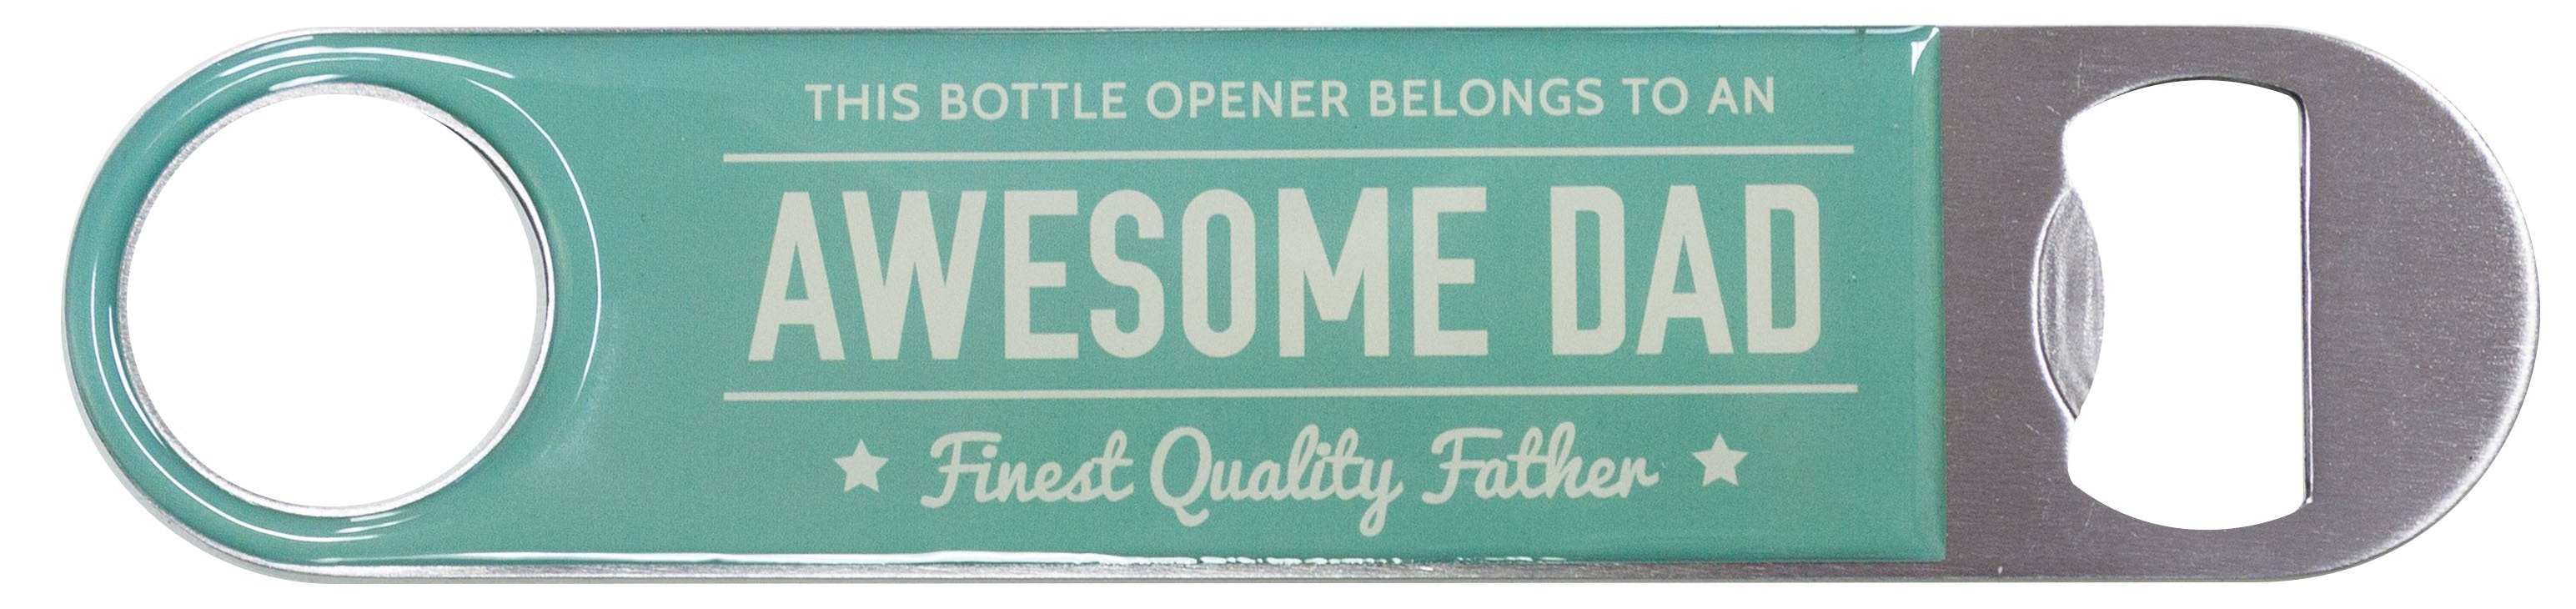 Bottle Opener Awesome Dad